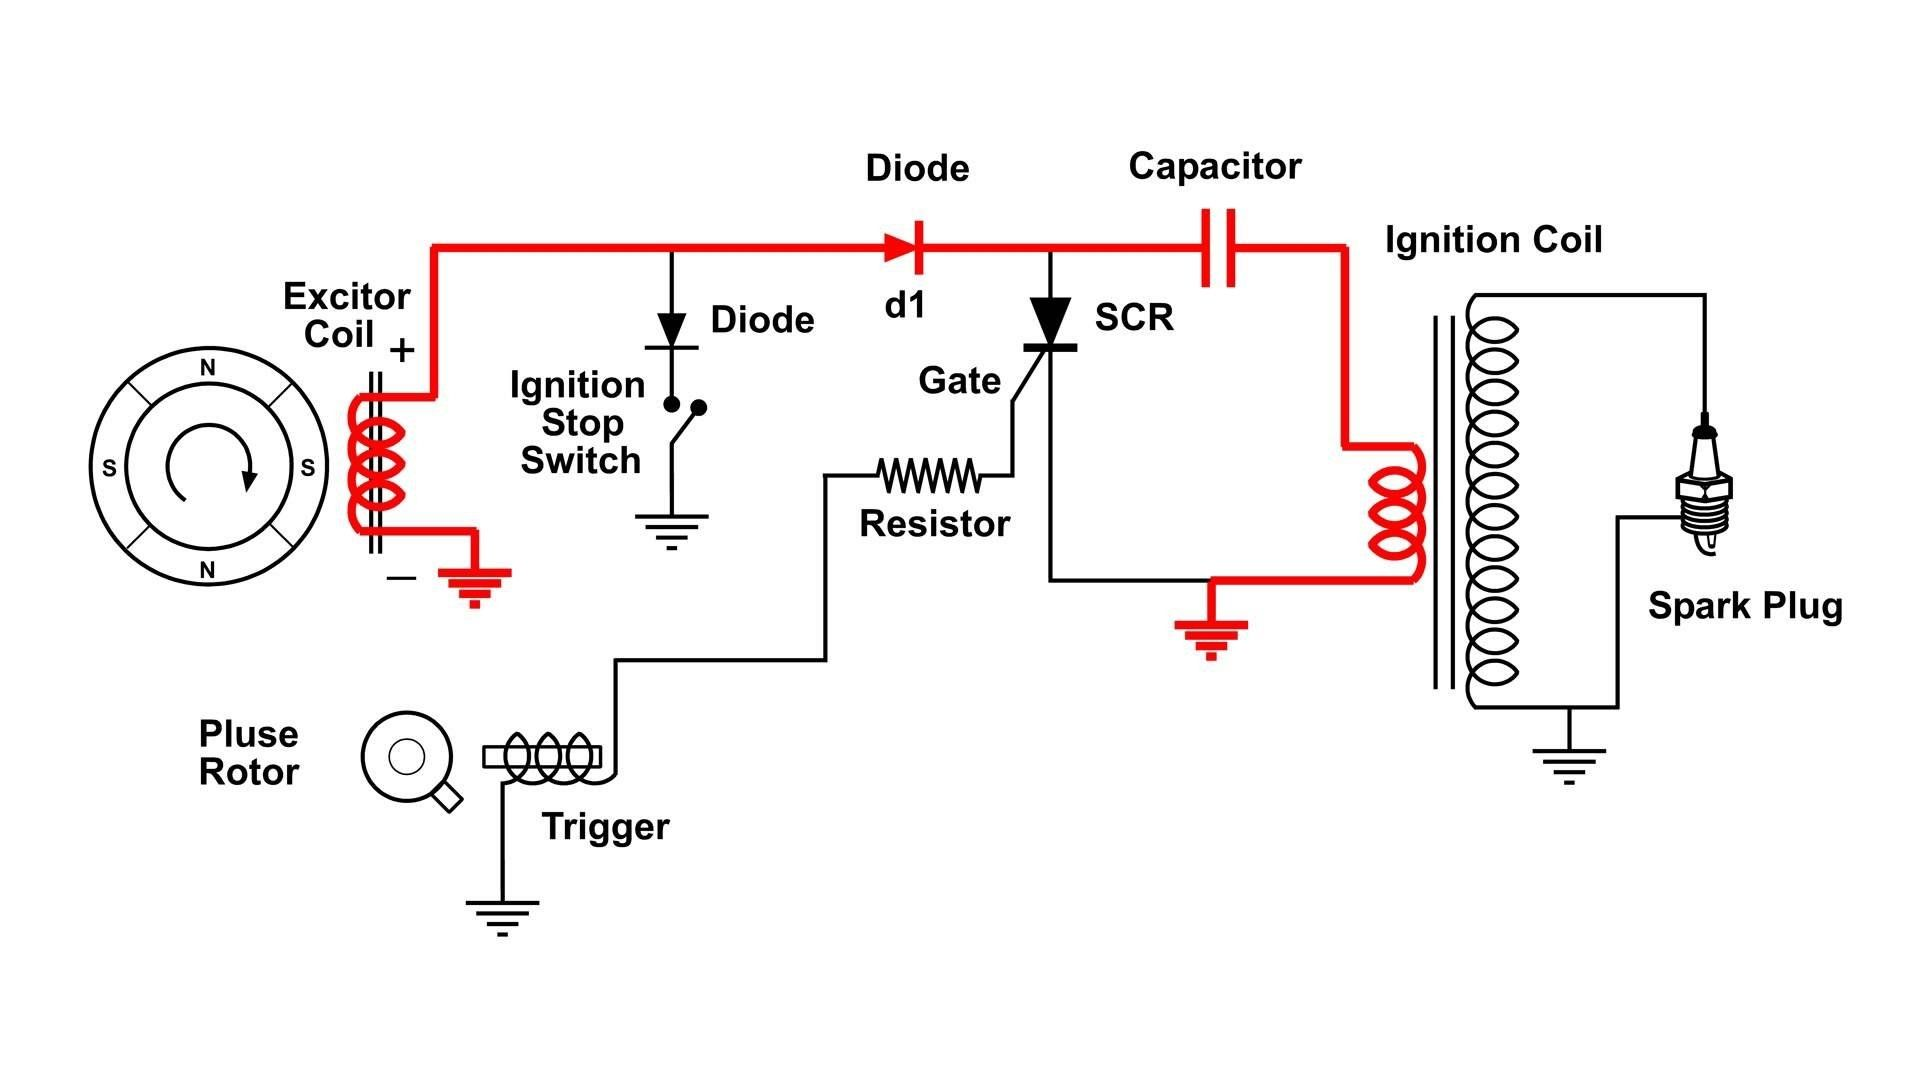 cdi capacitor discharge ignition circuit demo youtube inside motorcycle ignition coil wiring diagram [ 1920 x 1080 Pixel ]